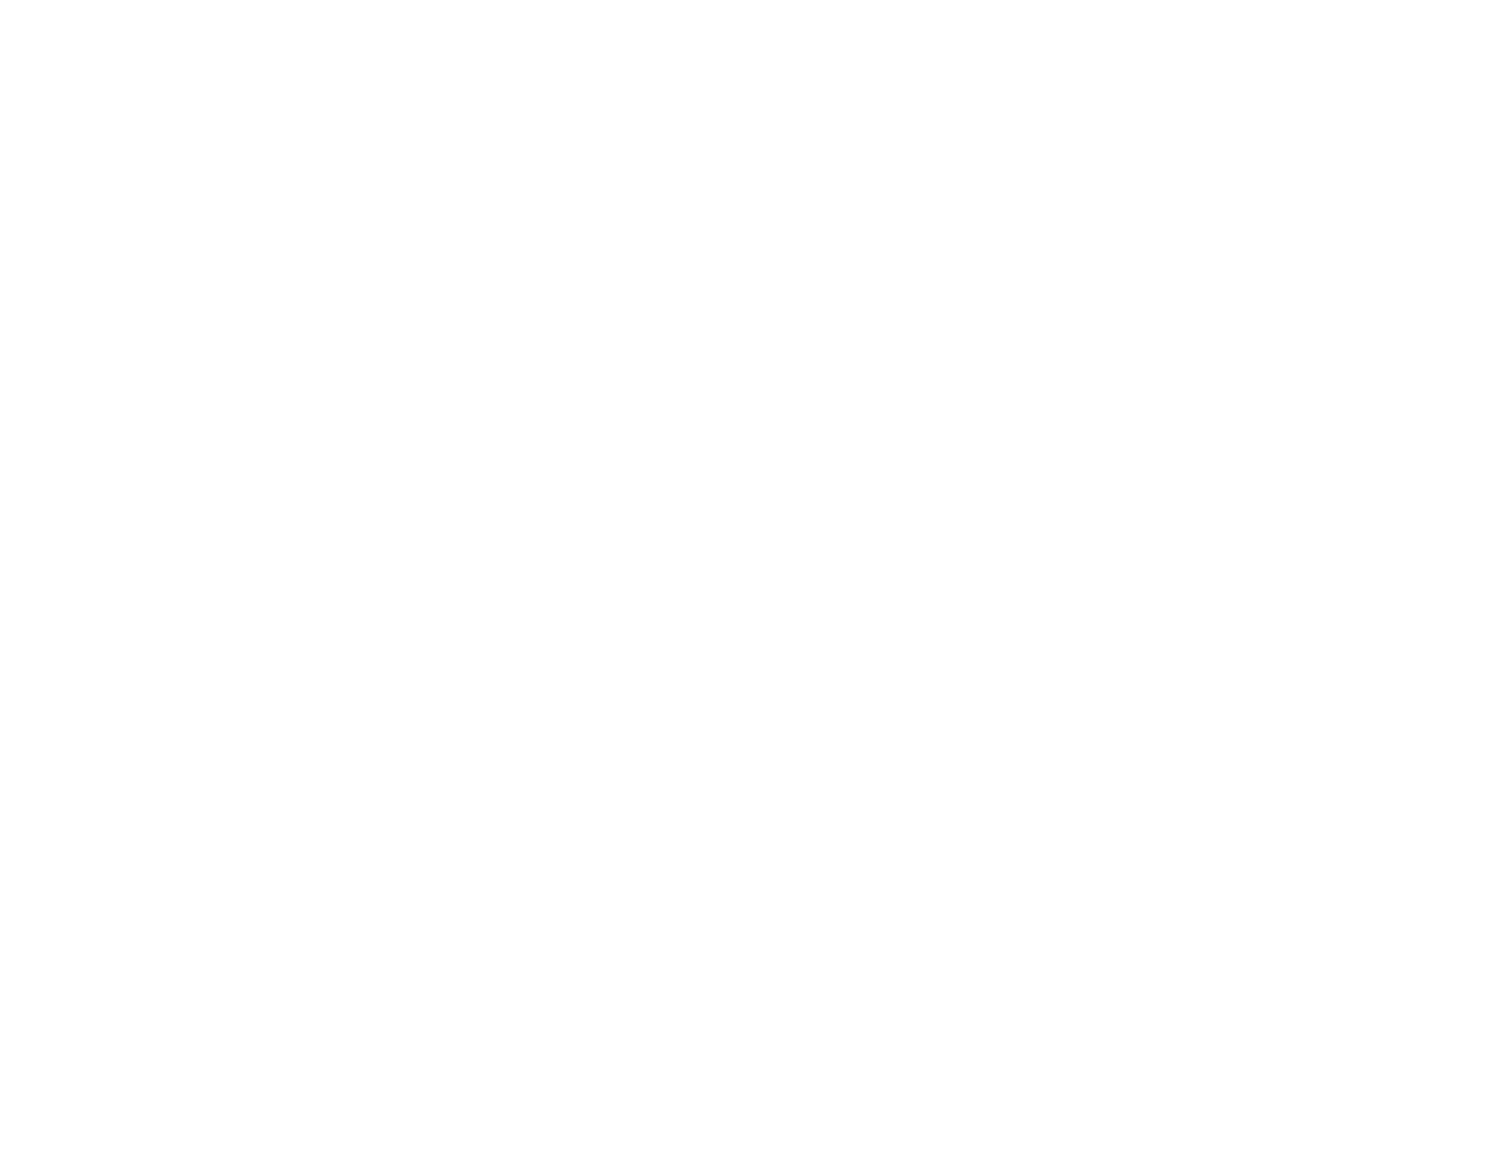 Top of the World Tours